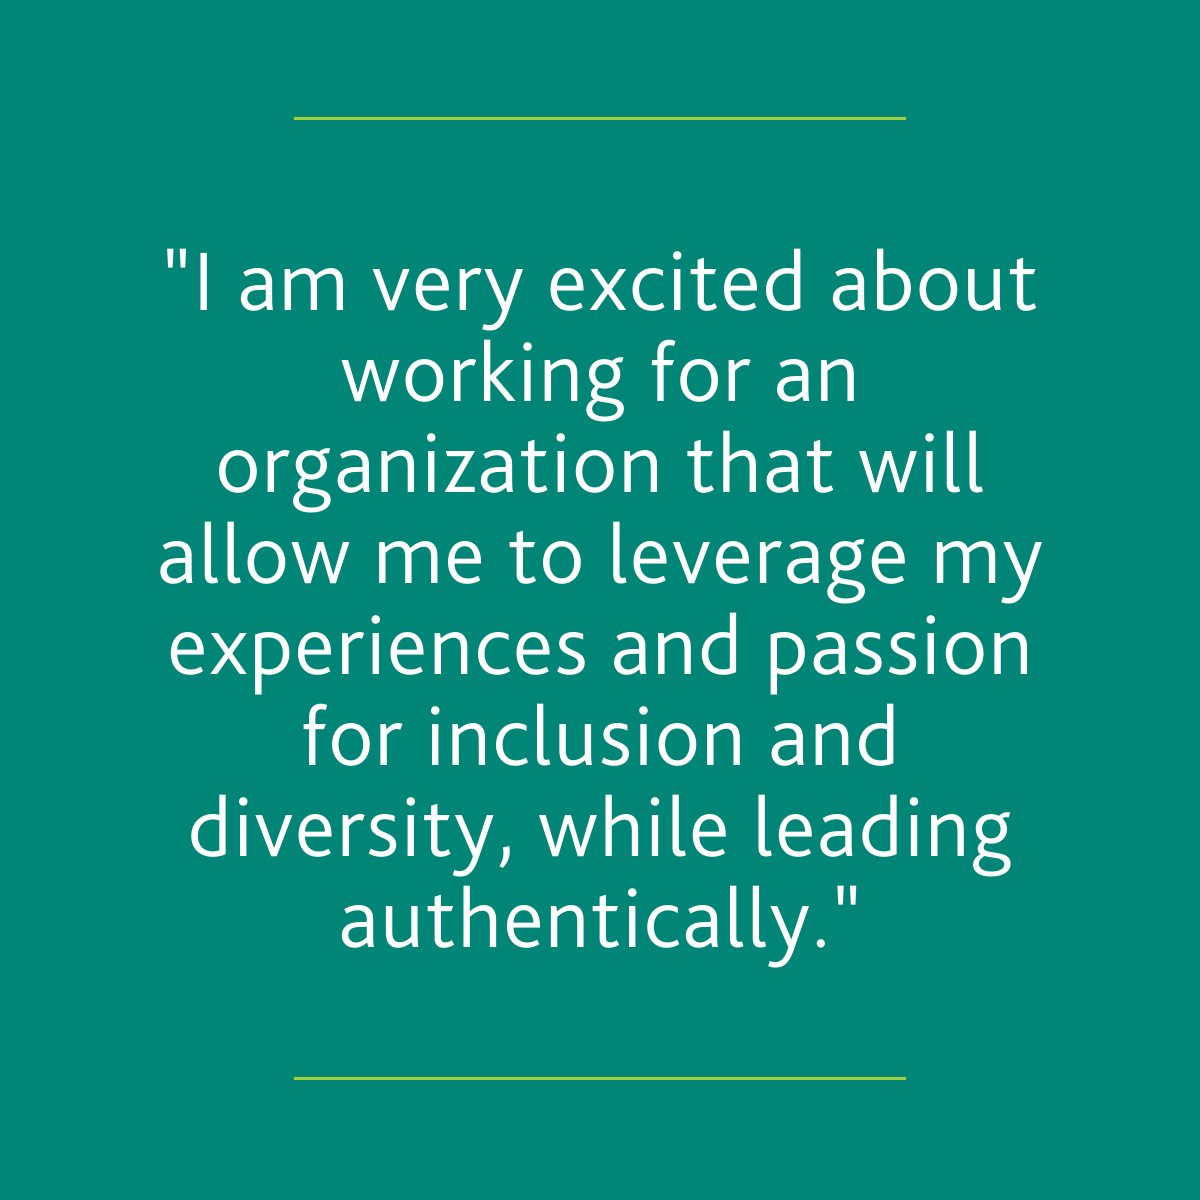 """I am very excited about working for an organization that will allow me to leverage my experiences and passion for inclusion and diversity, while leading authentically."""